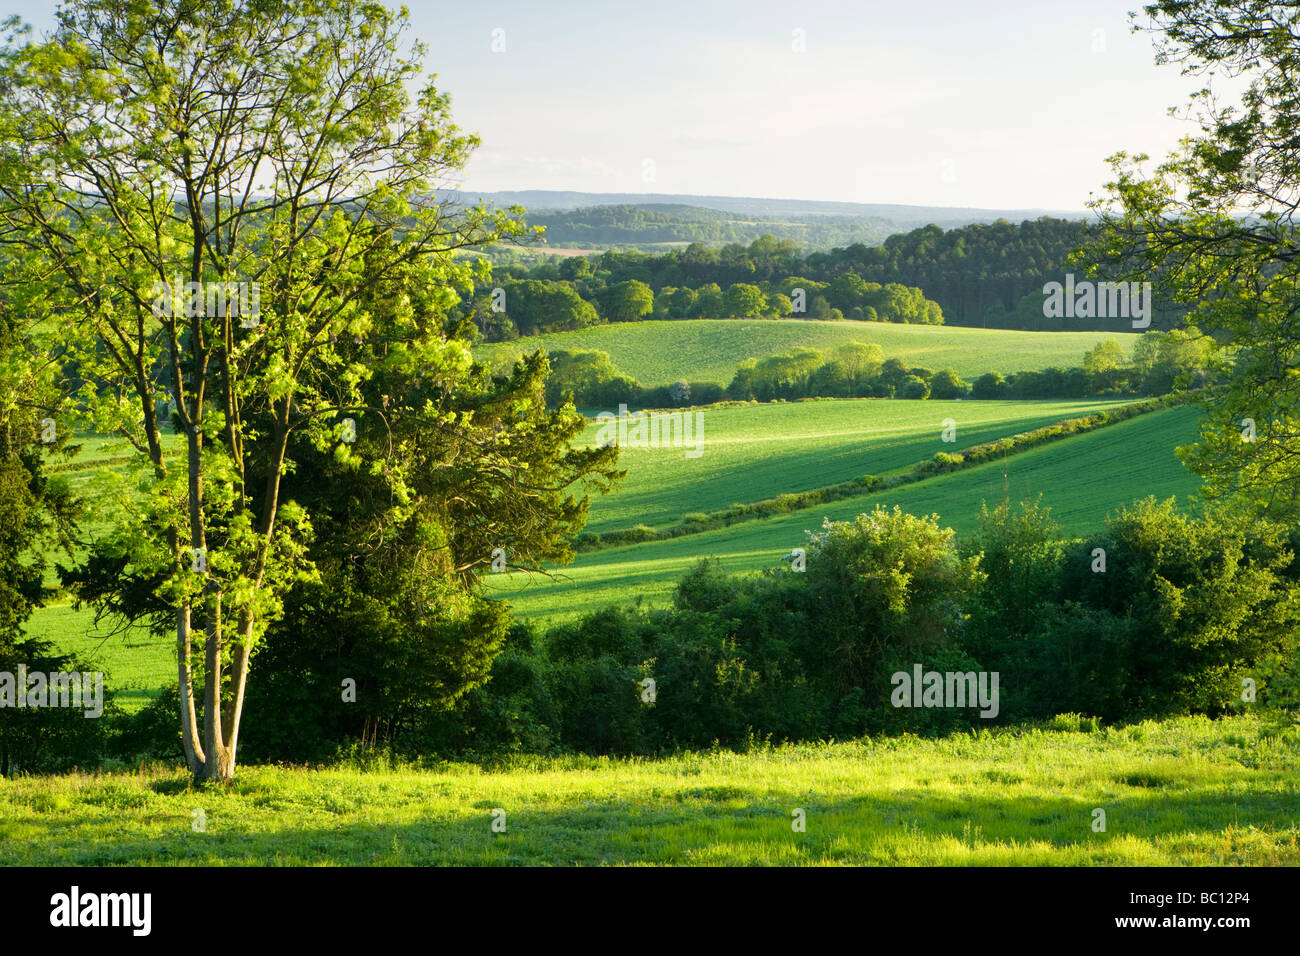 Vista hacia el sur desde North Downs en Newlands Corner, Surrey, Reino Unido Foto de stock